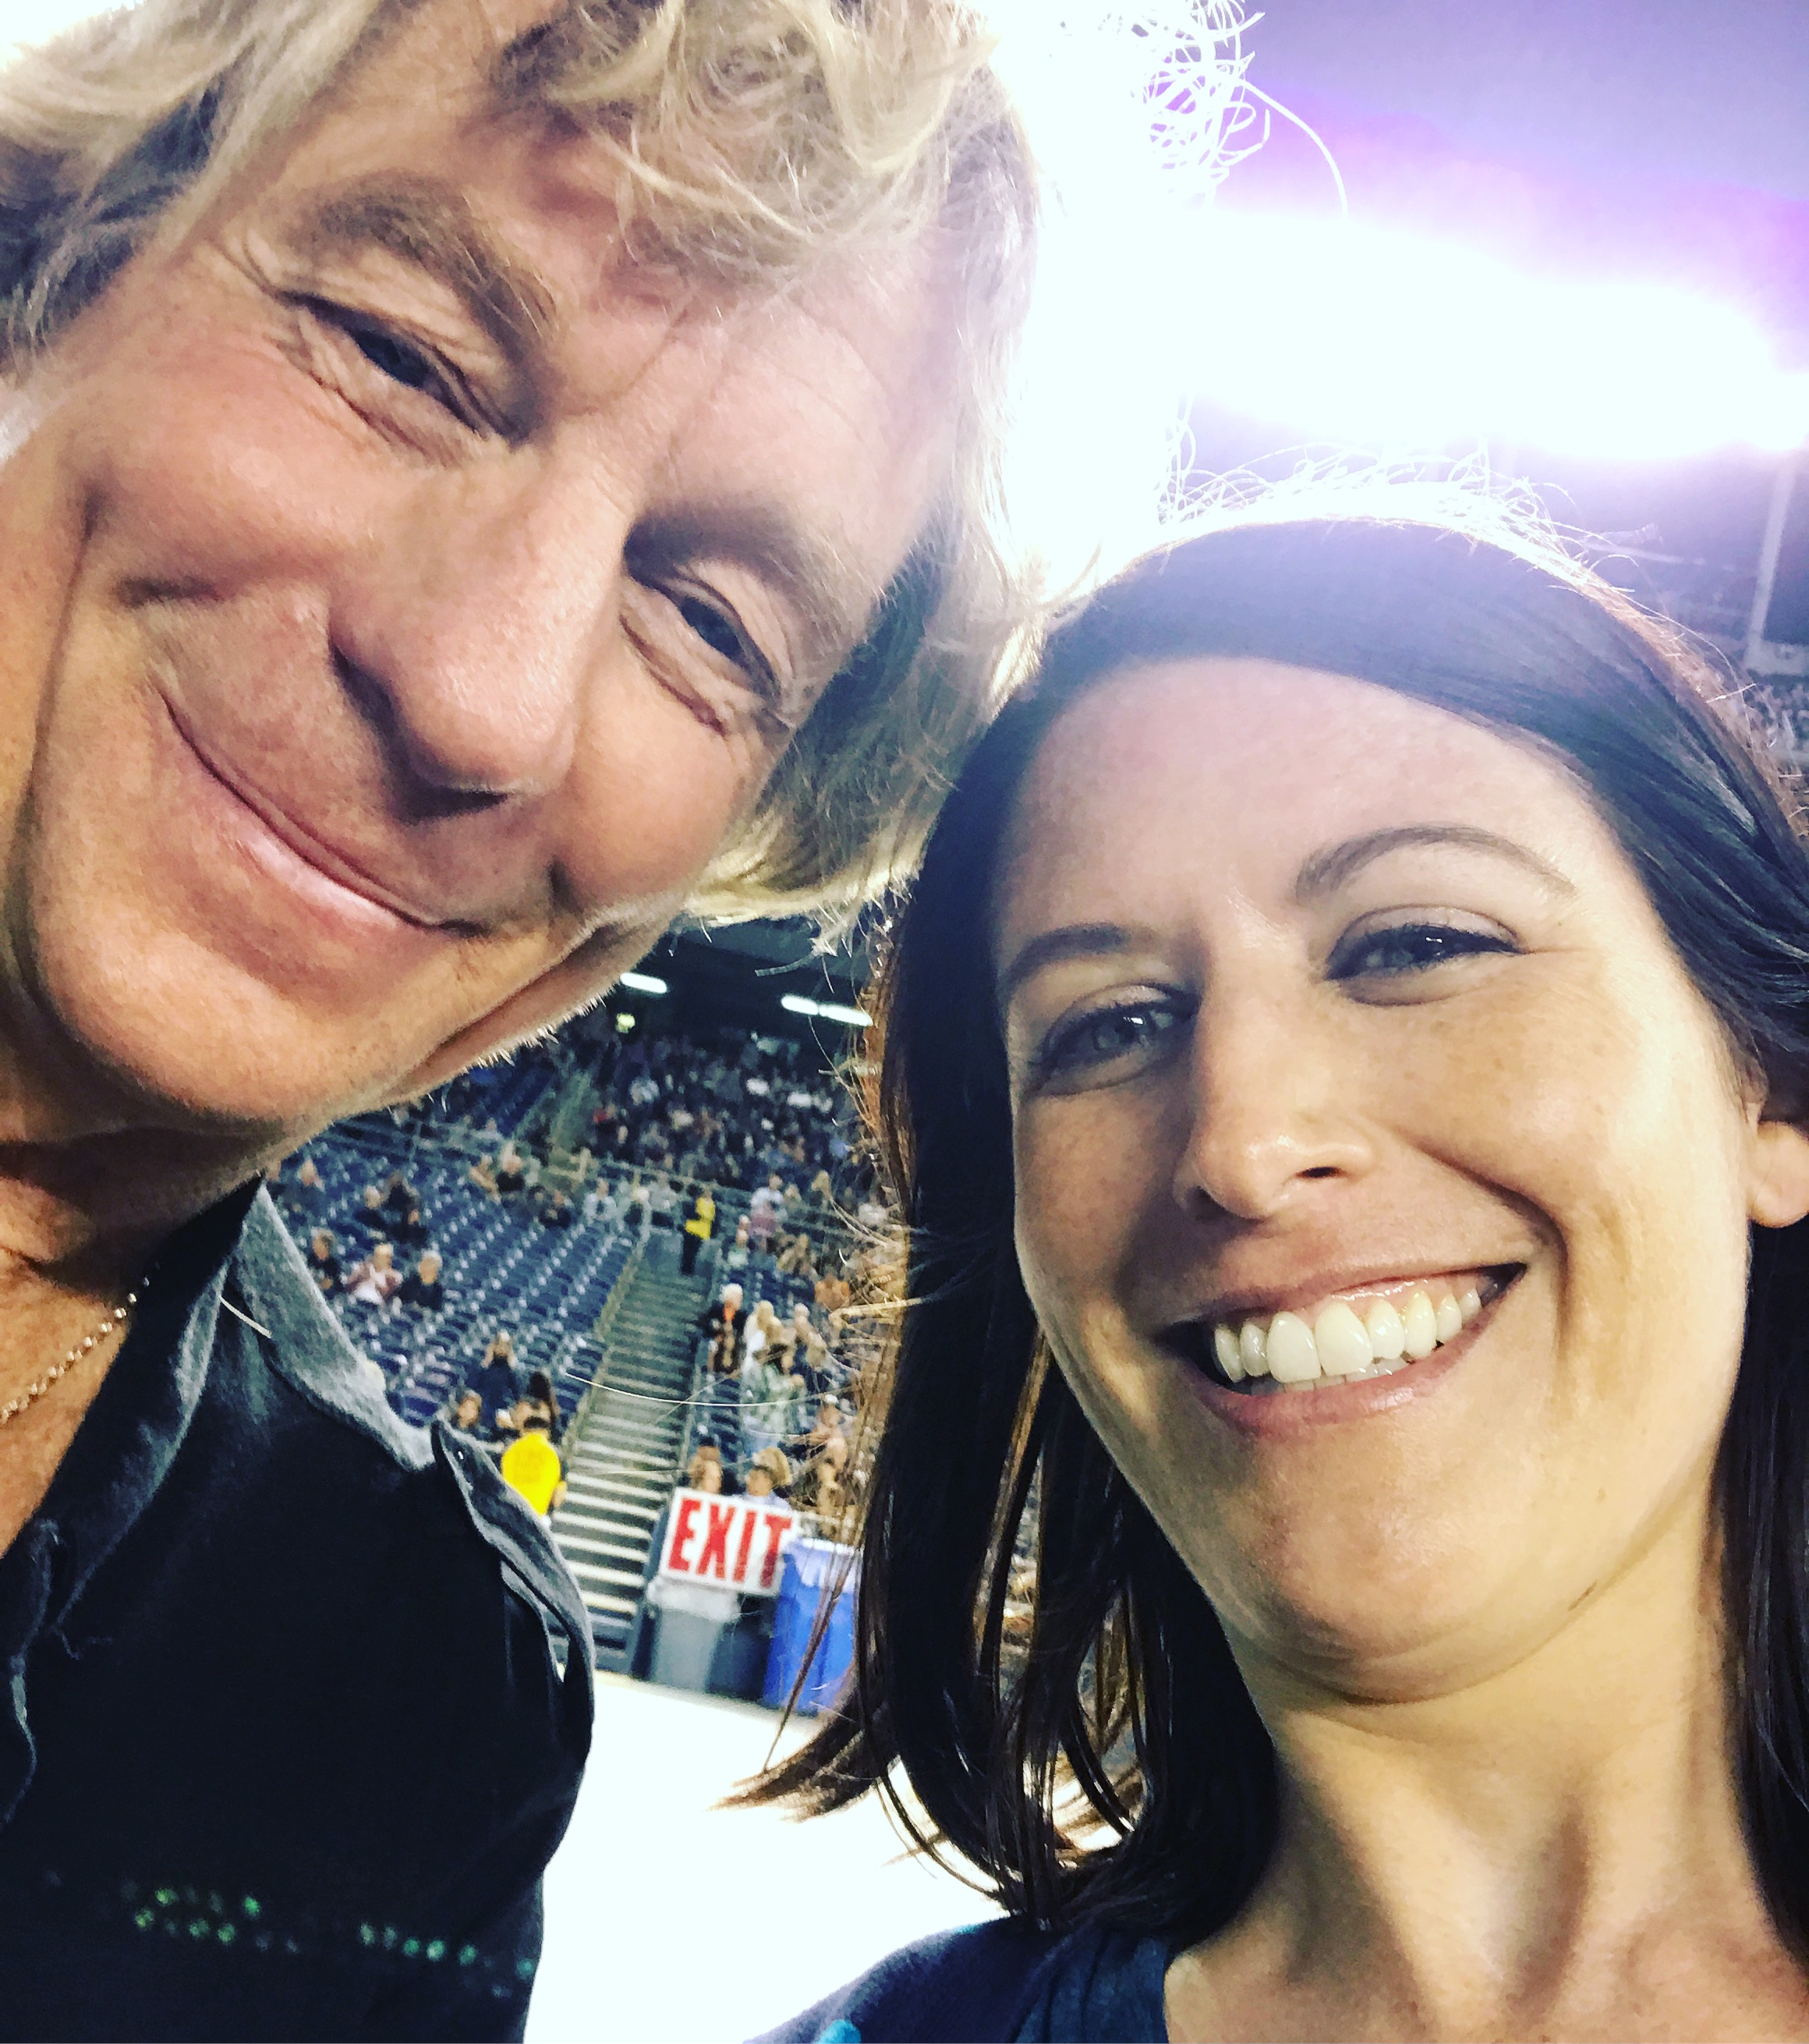 With Dallas Schoo (he insisted we take a selfie) September 22, 2017 in San Diego, CA.